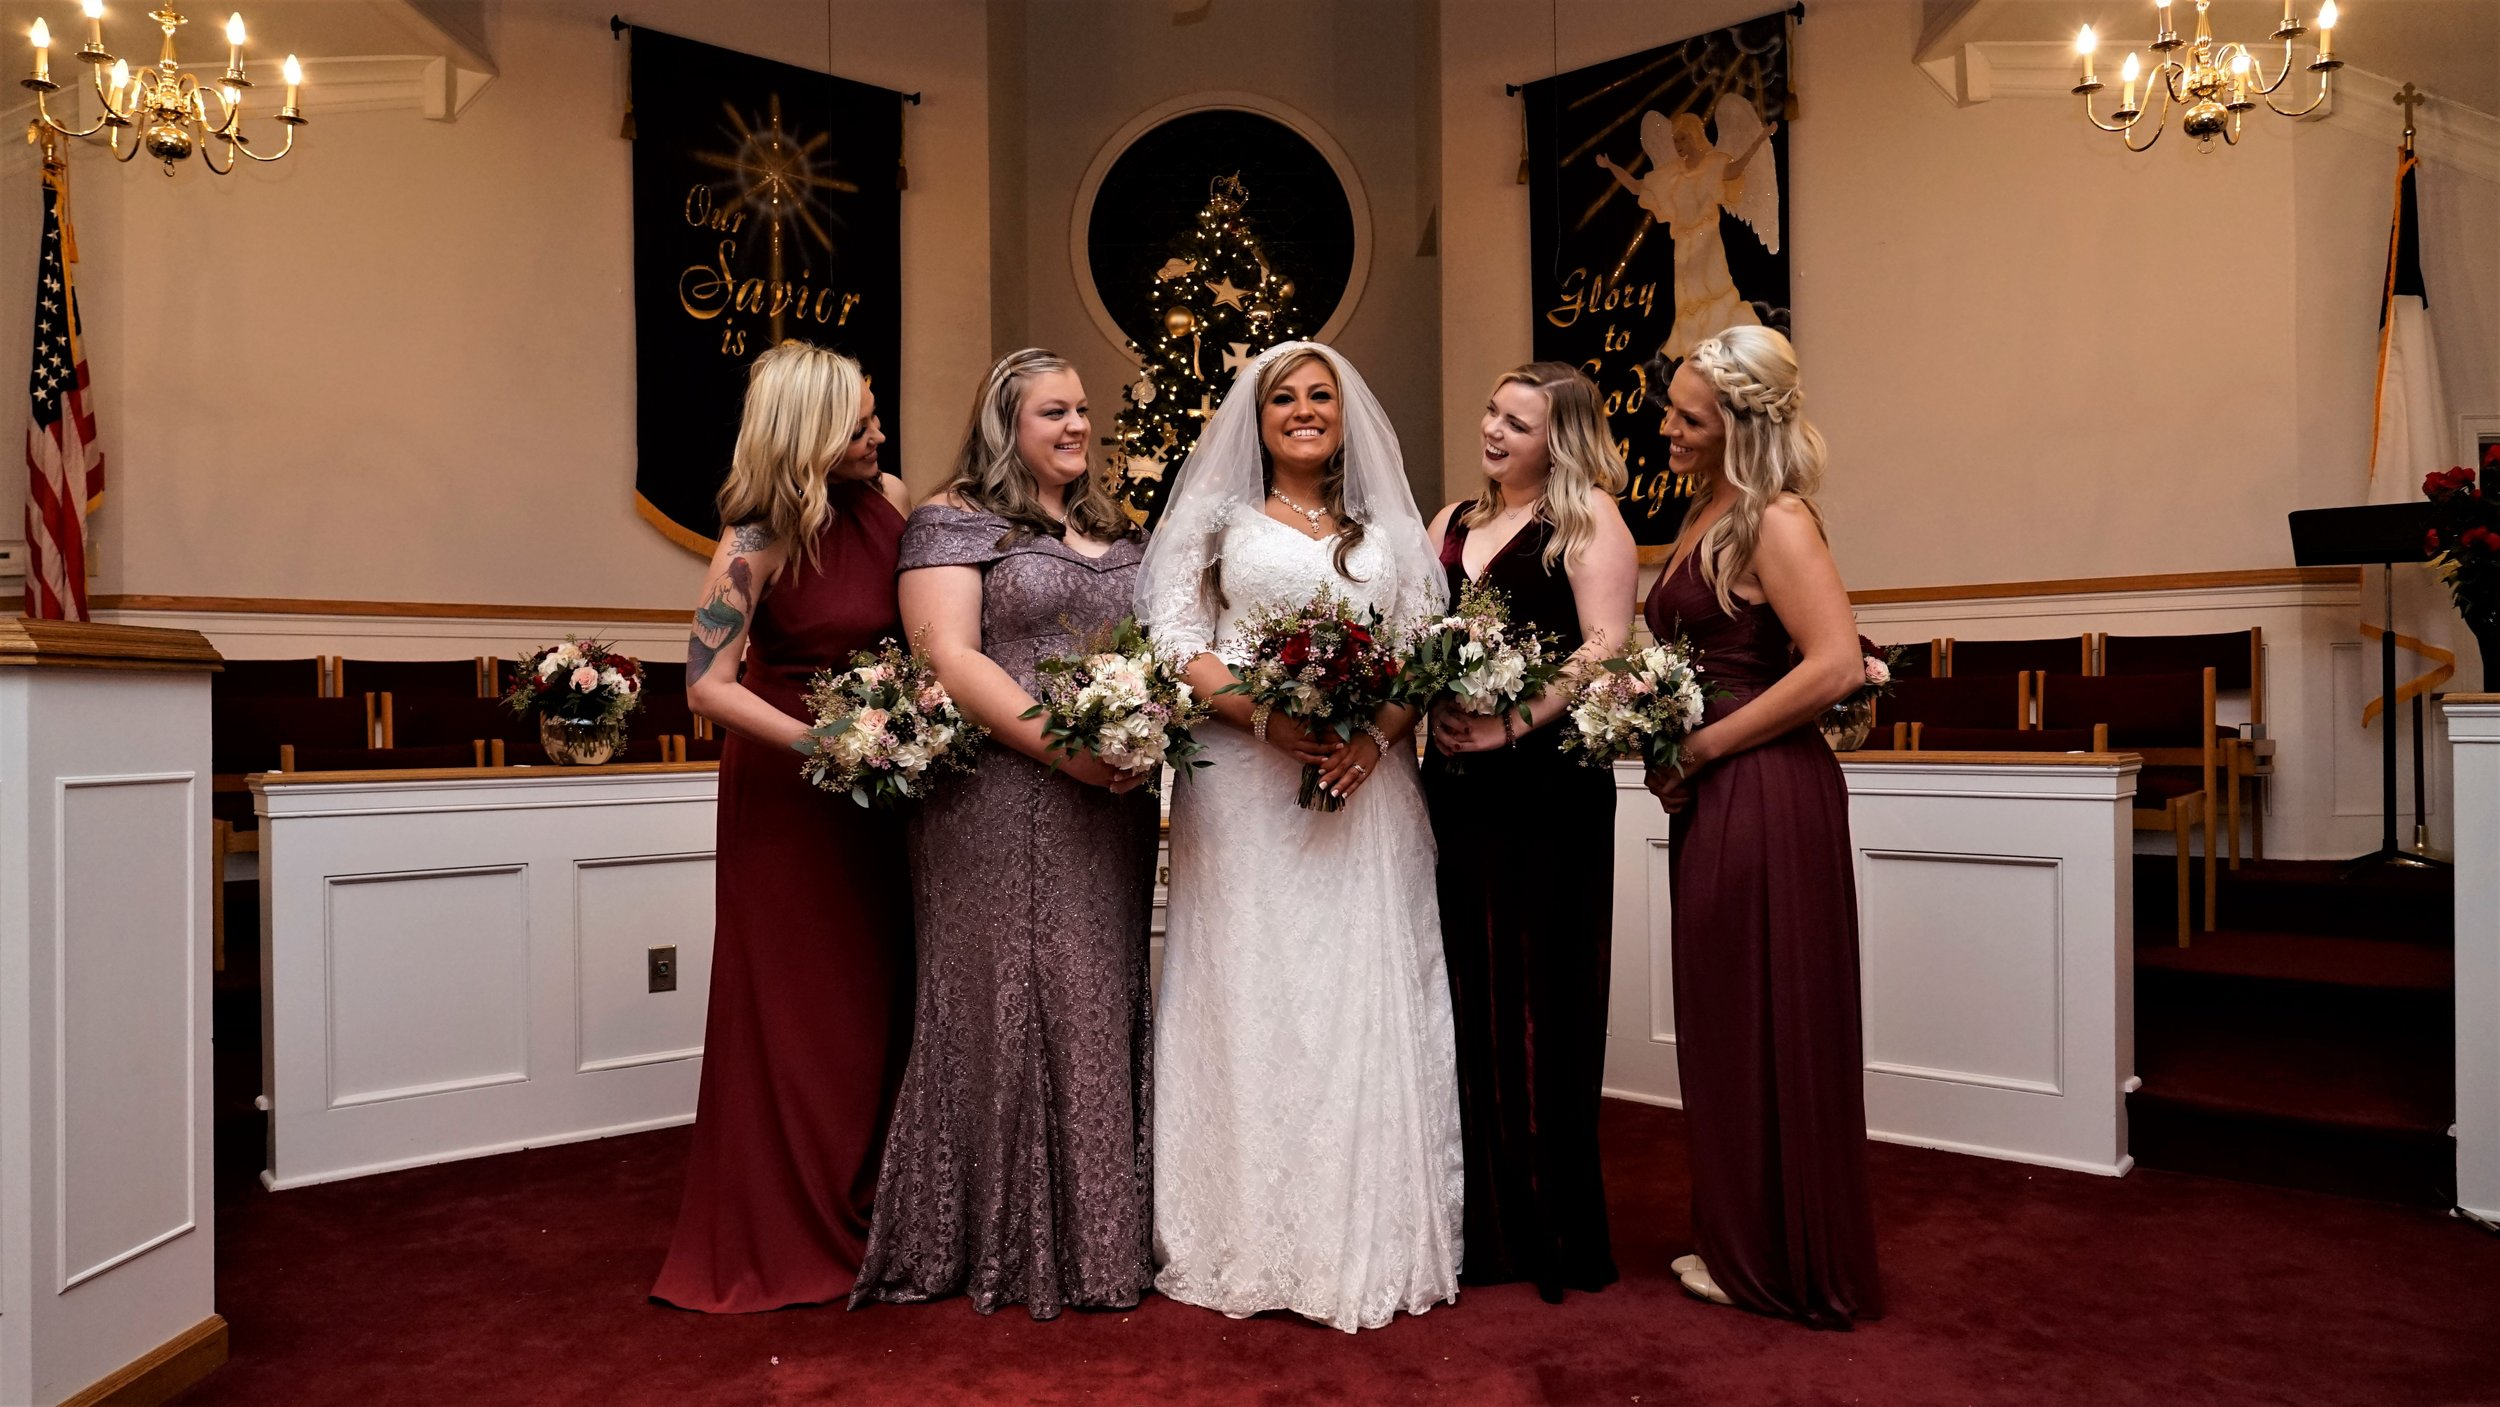 Mikala Lackey and her stunning Brides Maids